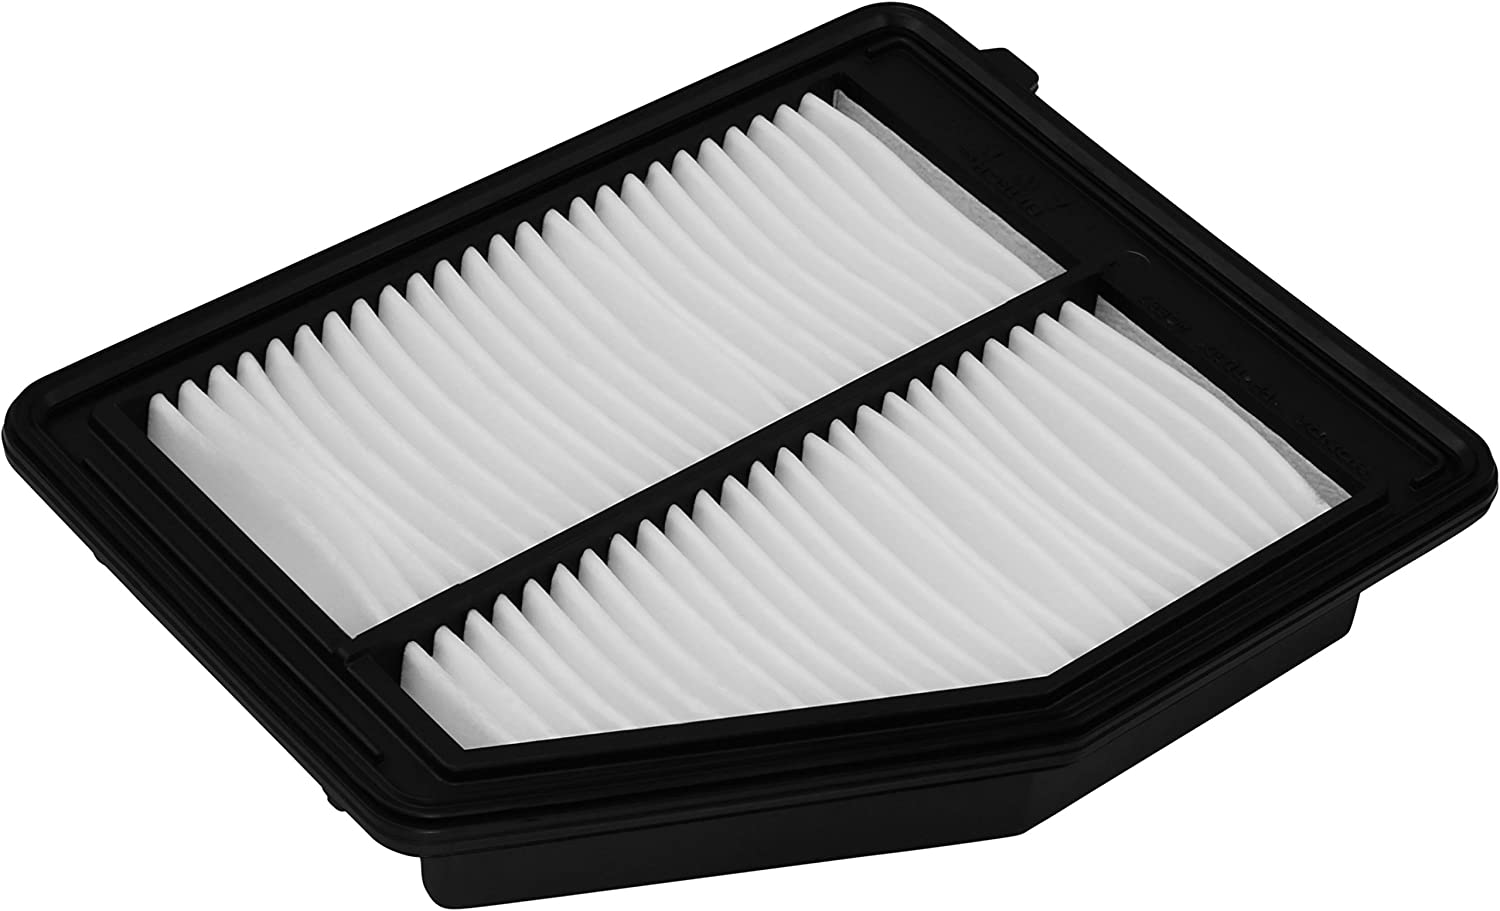 EPAuto GP213 Replacement for Honda//Acura Extra Guard Panel Engine Air Filter for Civic ILX Base 2.0L 2012-2015 17220-R1A-A01 2013-2015